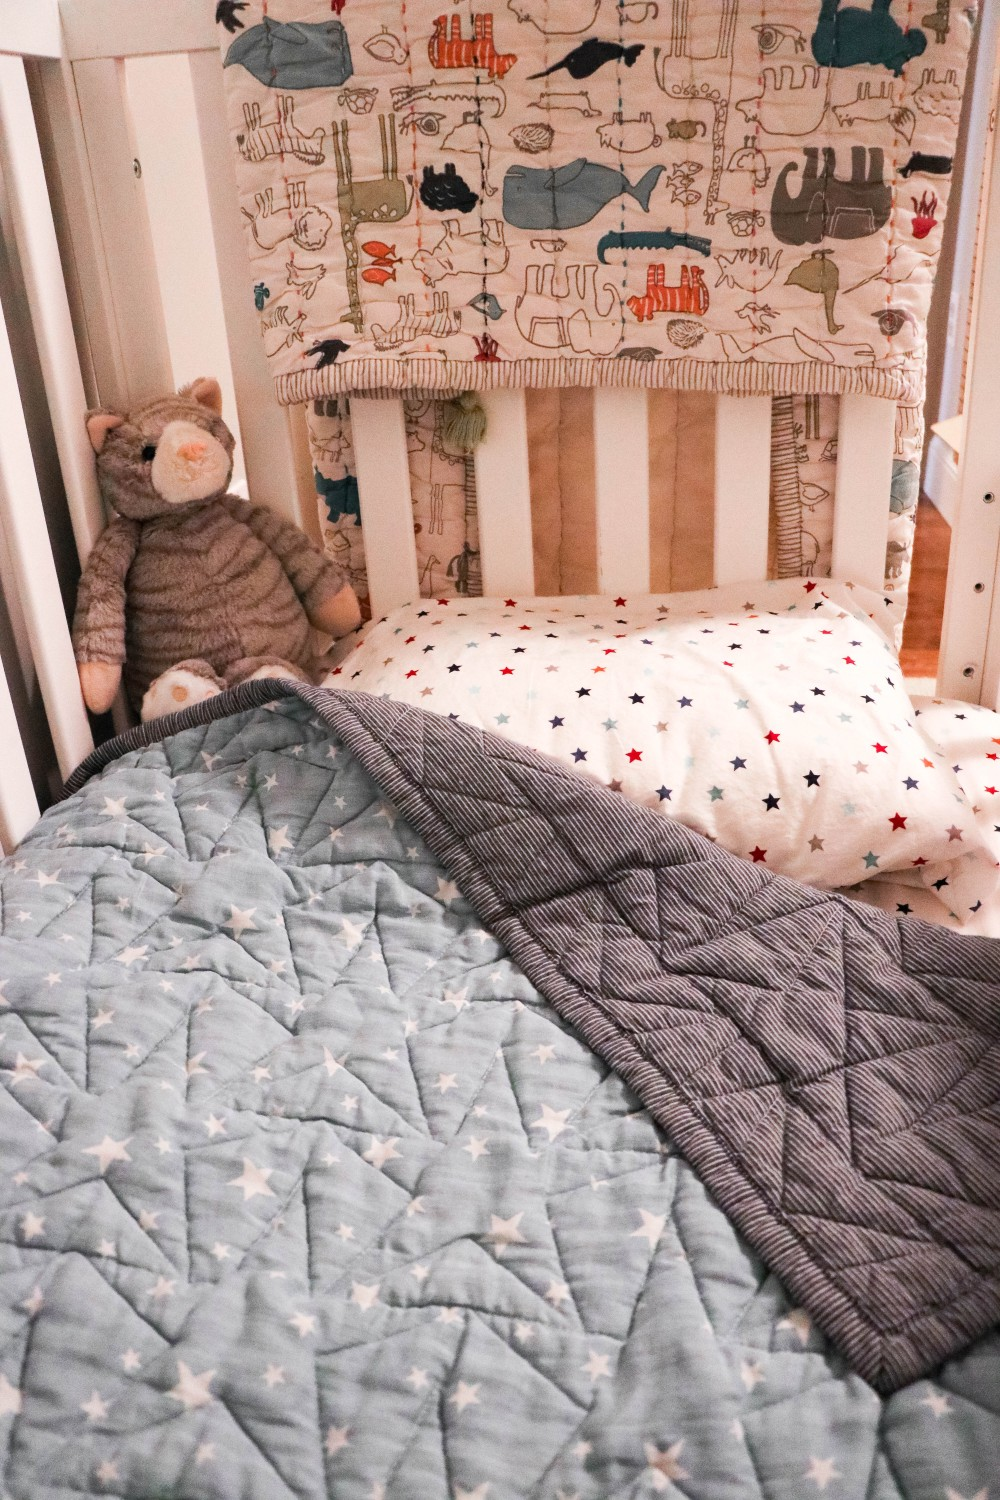 Sharing my tips for transitioning your toddler to a toddler bed as well as when we realized it was time to make the transition on Have Need Want! Click on the photo to check out the post! #toddlerbed #motherhood #momlife #convertiblecrib #davincicrib #toddlerroom #genderneutralroom #genderneutralnursery #toddlerboyroom